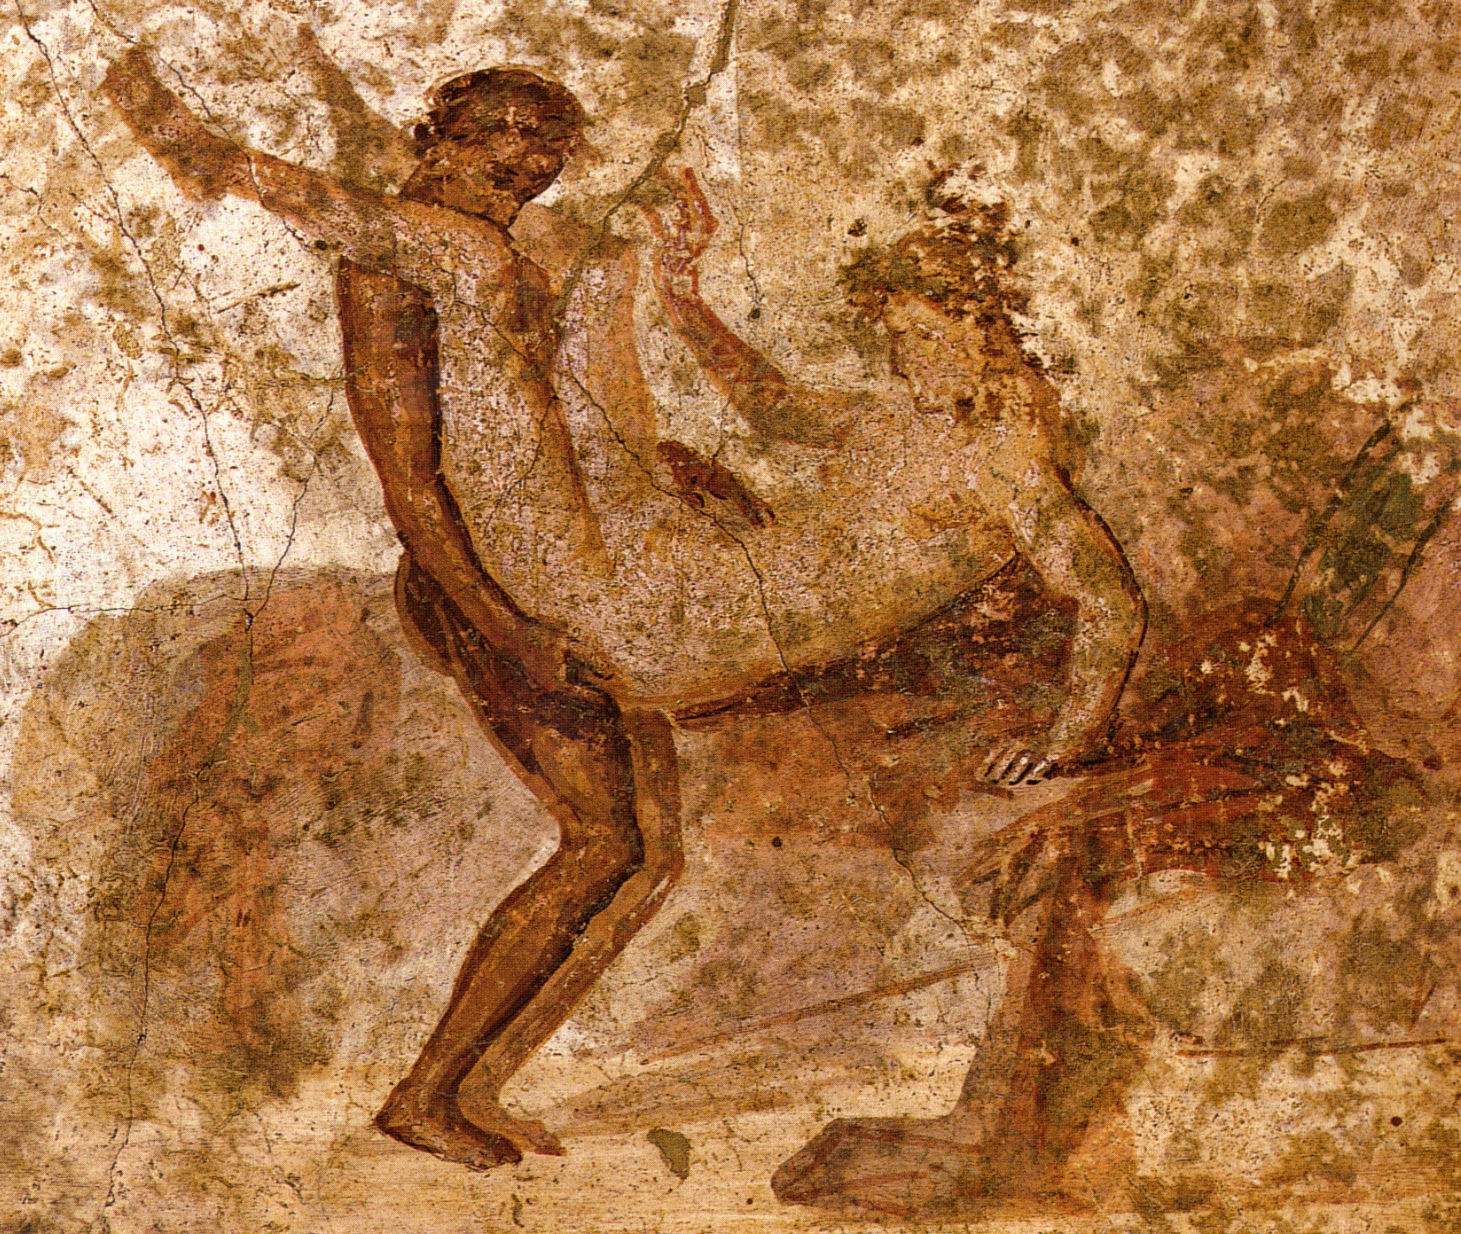 File:Pompeii - Erotic Scene 2 - MAN.jpg